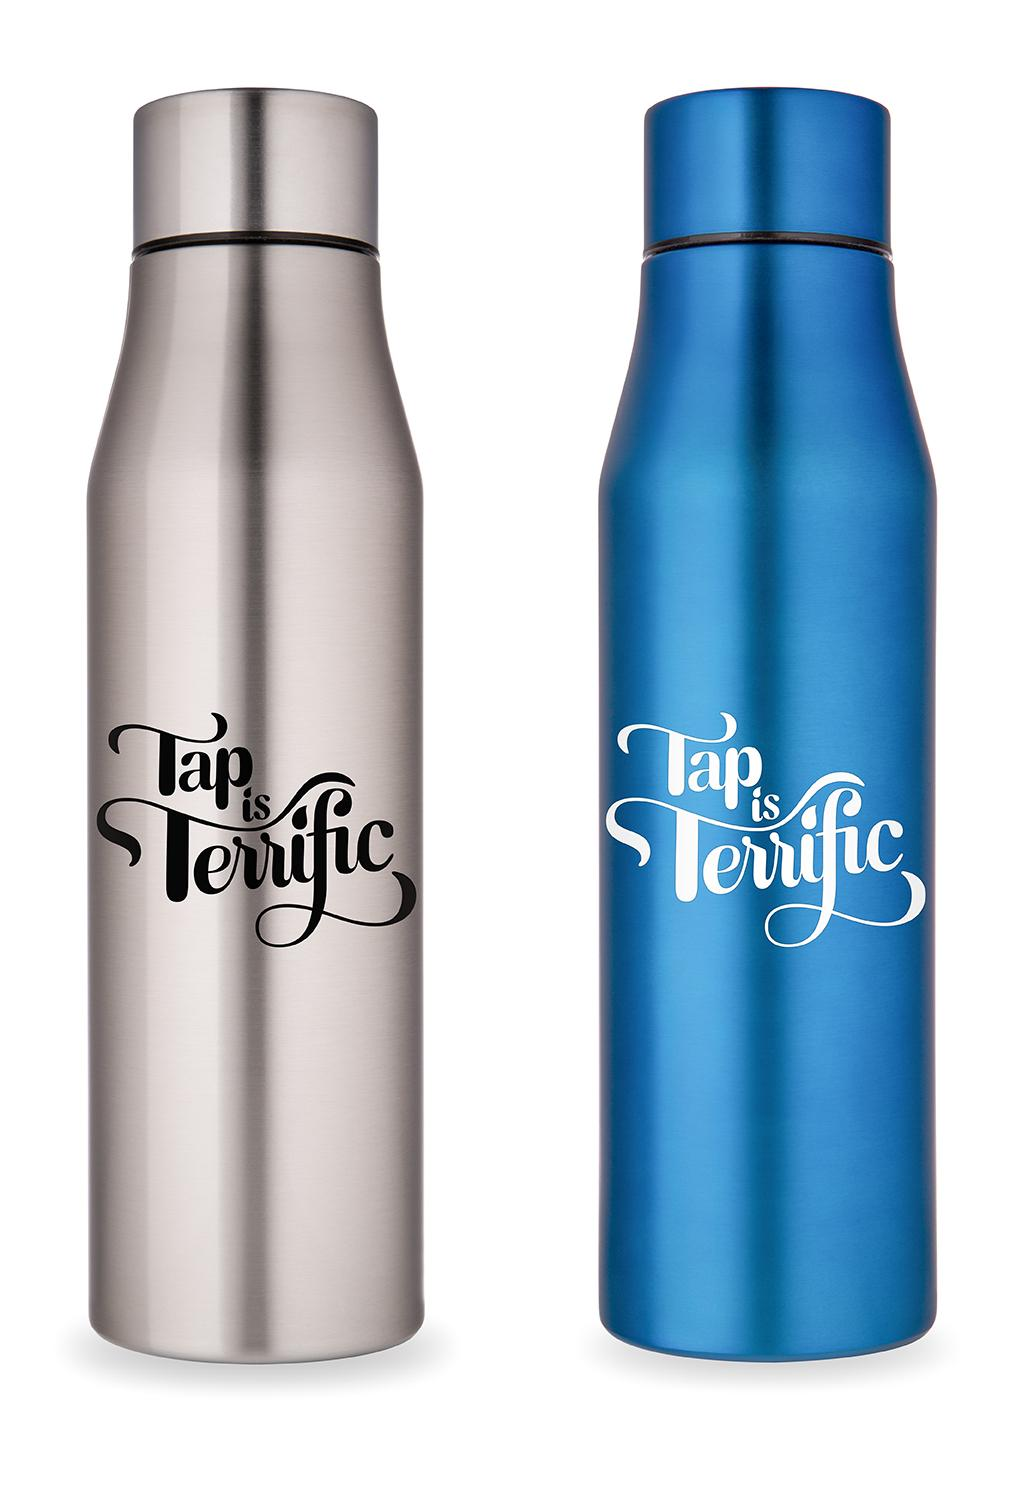 Tap Is Terrific Reusable Stainless Steel Water Bottle By Faucet Face